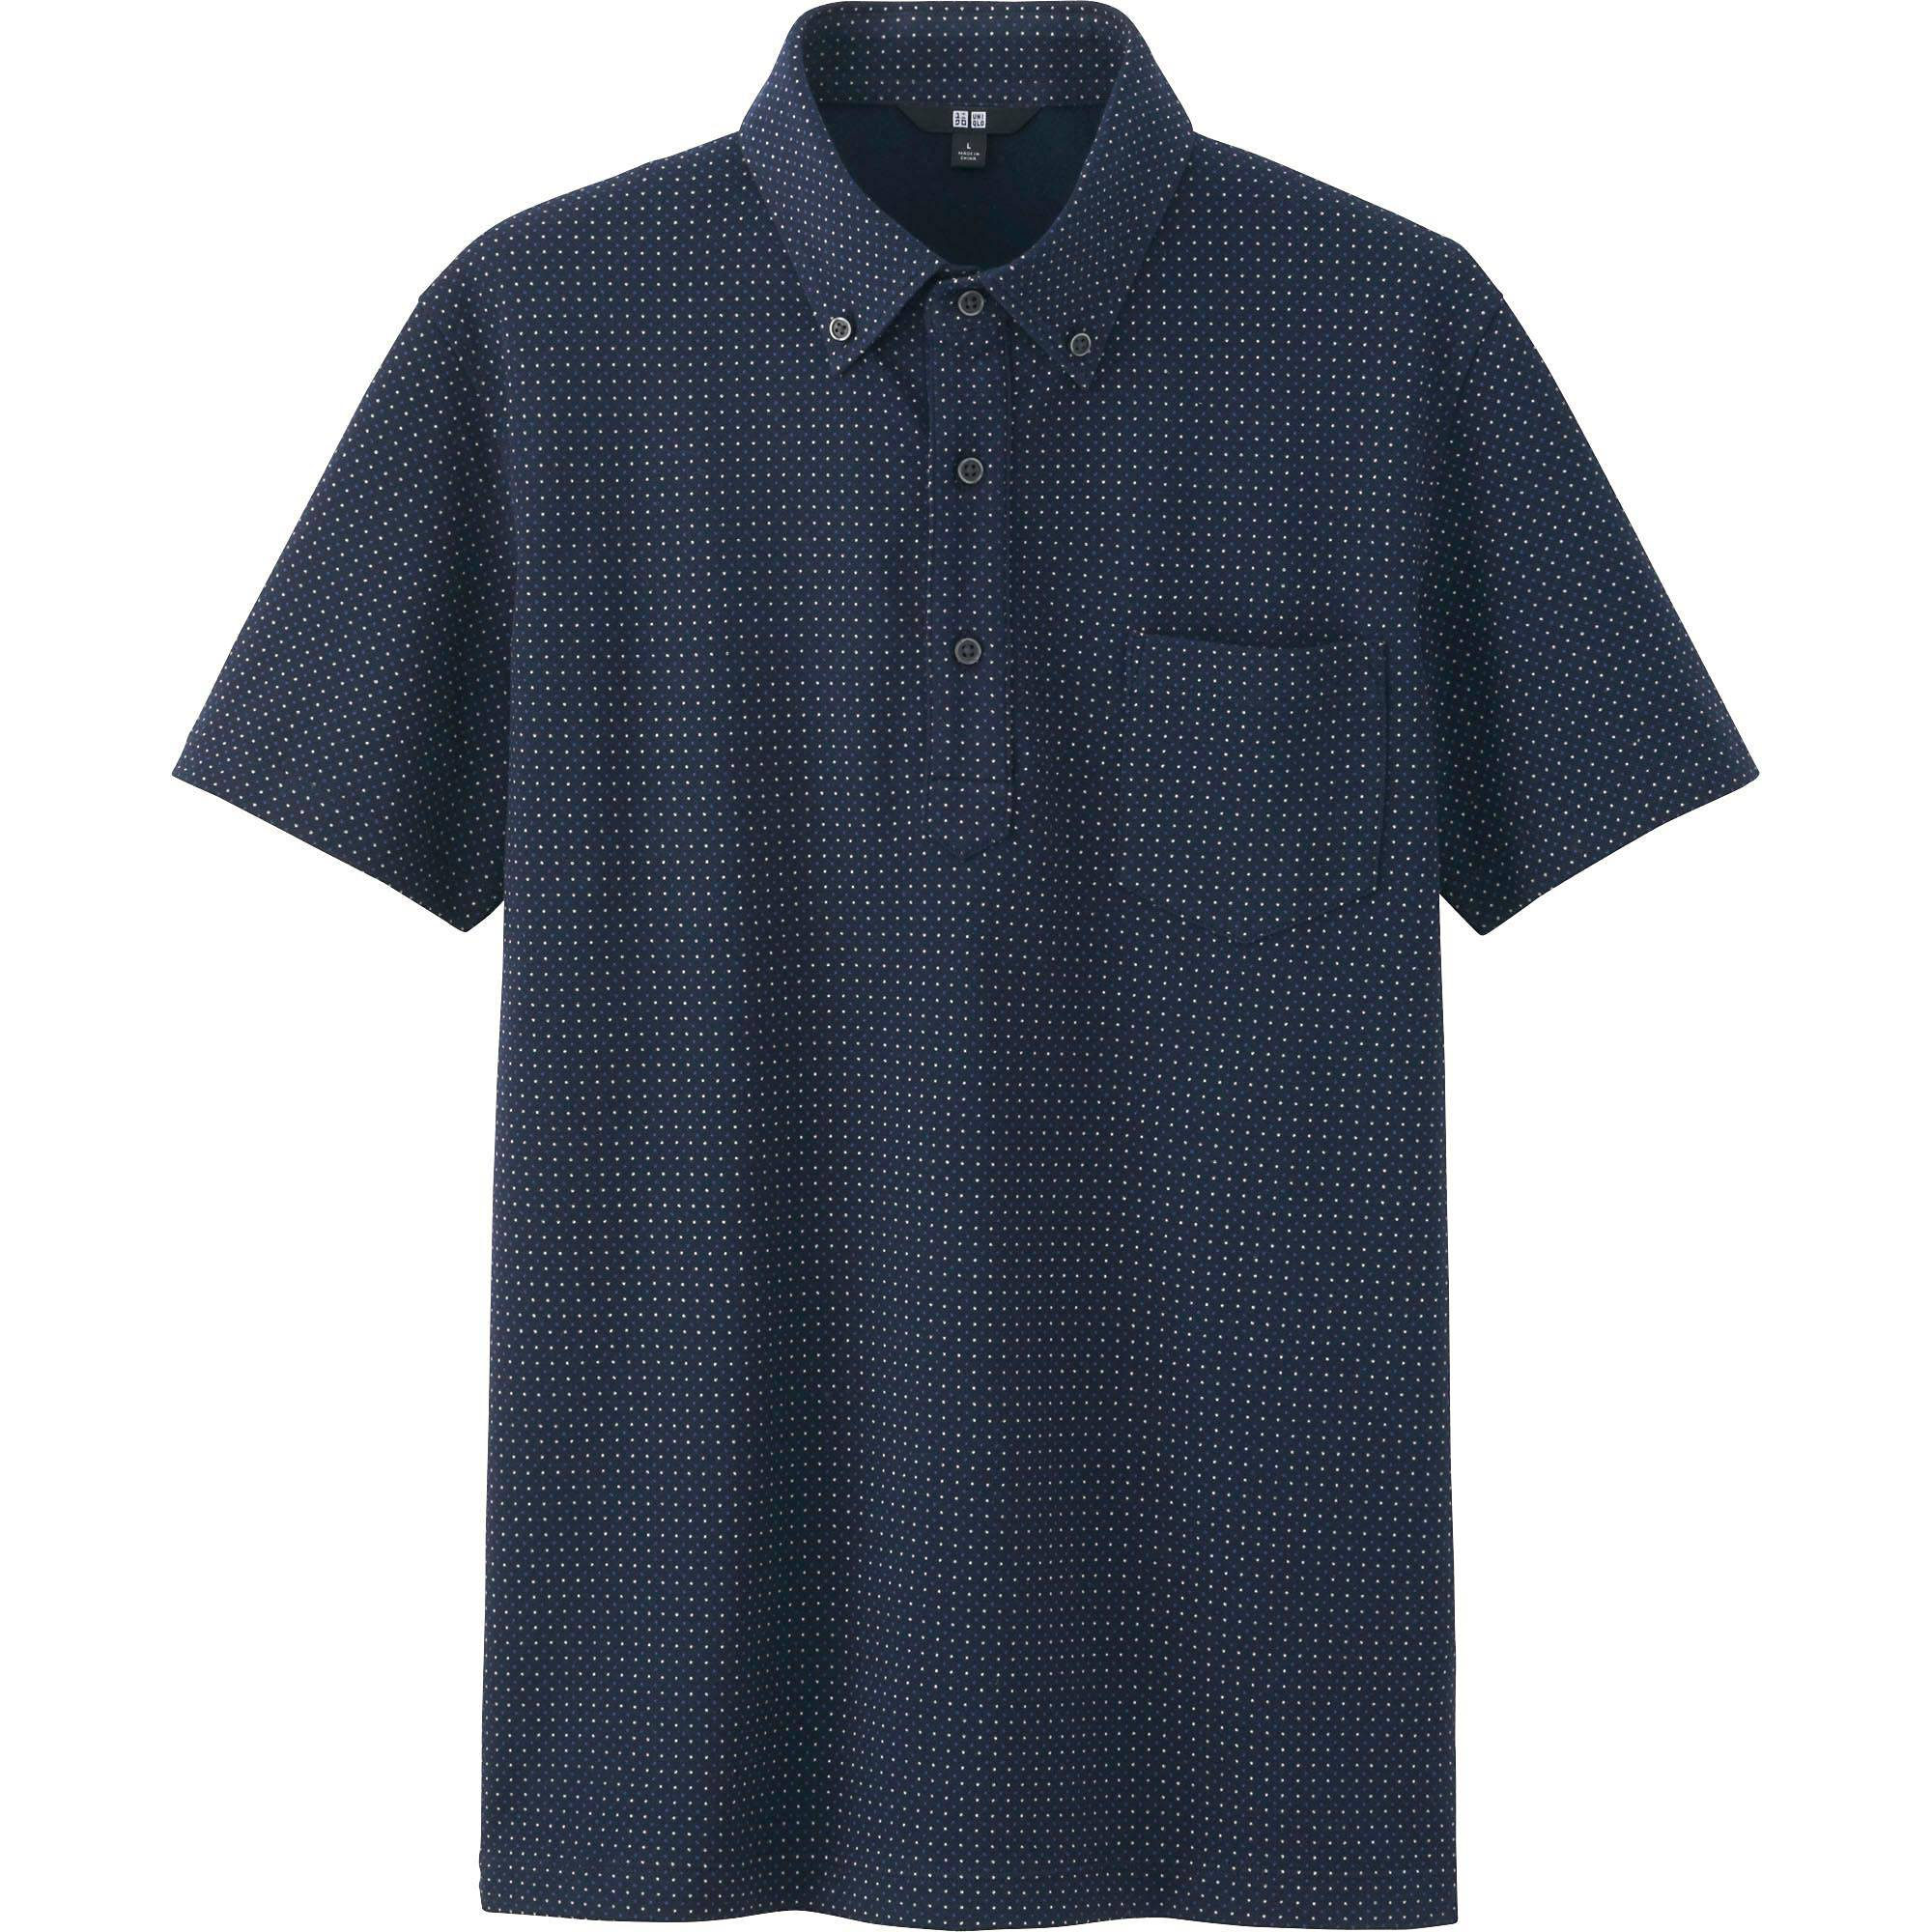 Men DRY COMFORT Button-Down Collar Polo Shirt | UNIQLO US